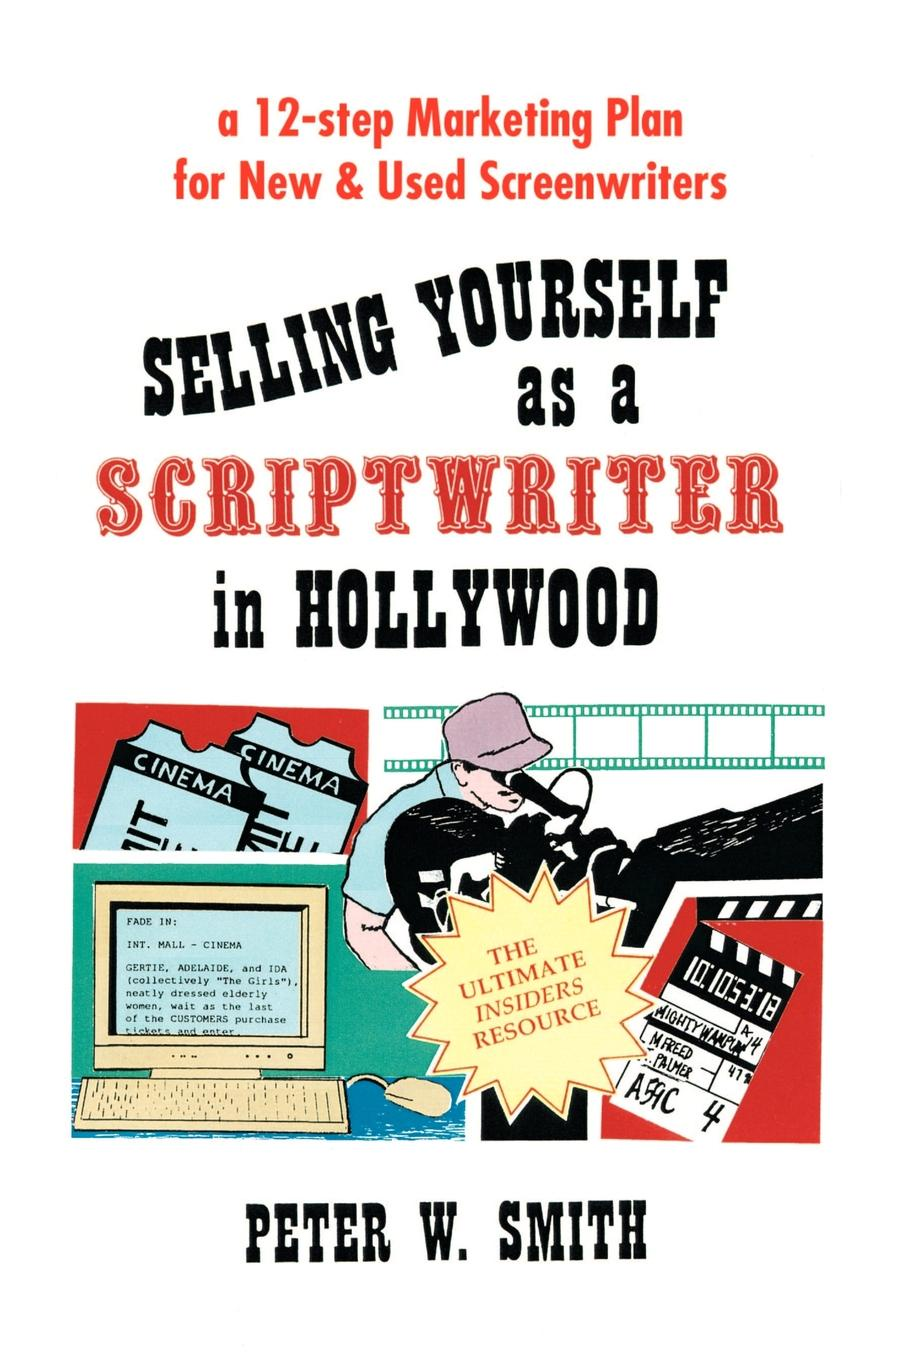 Peter W. Smith Selling Yourself as a Scriptwriter in Hollywood. A 12-Step Marketing Plan for New & Used Screenwriters elizabeth rush kruger marketing plan templates for enhancing profits